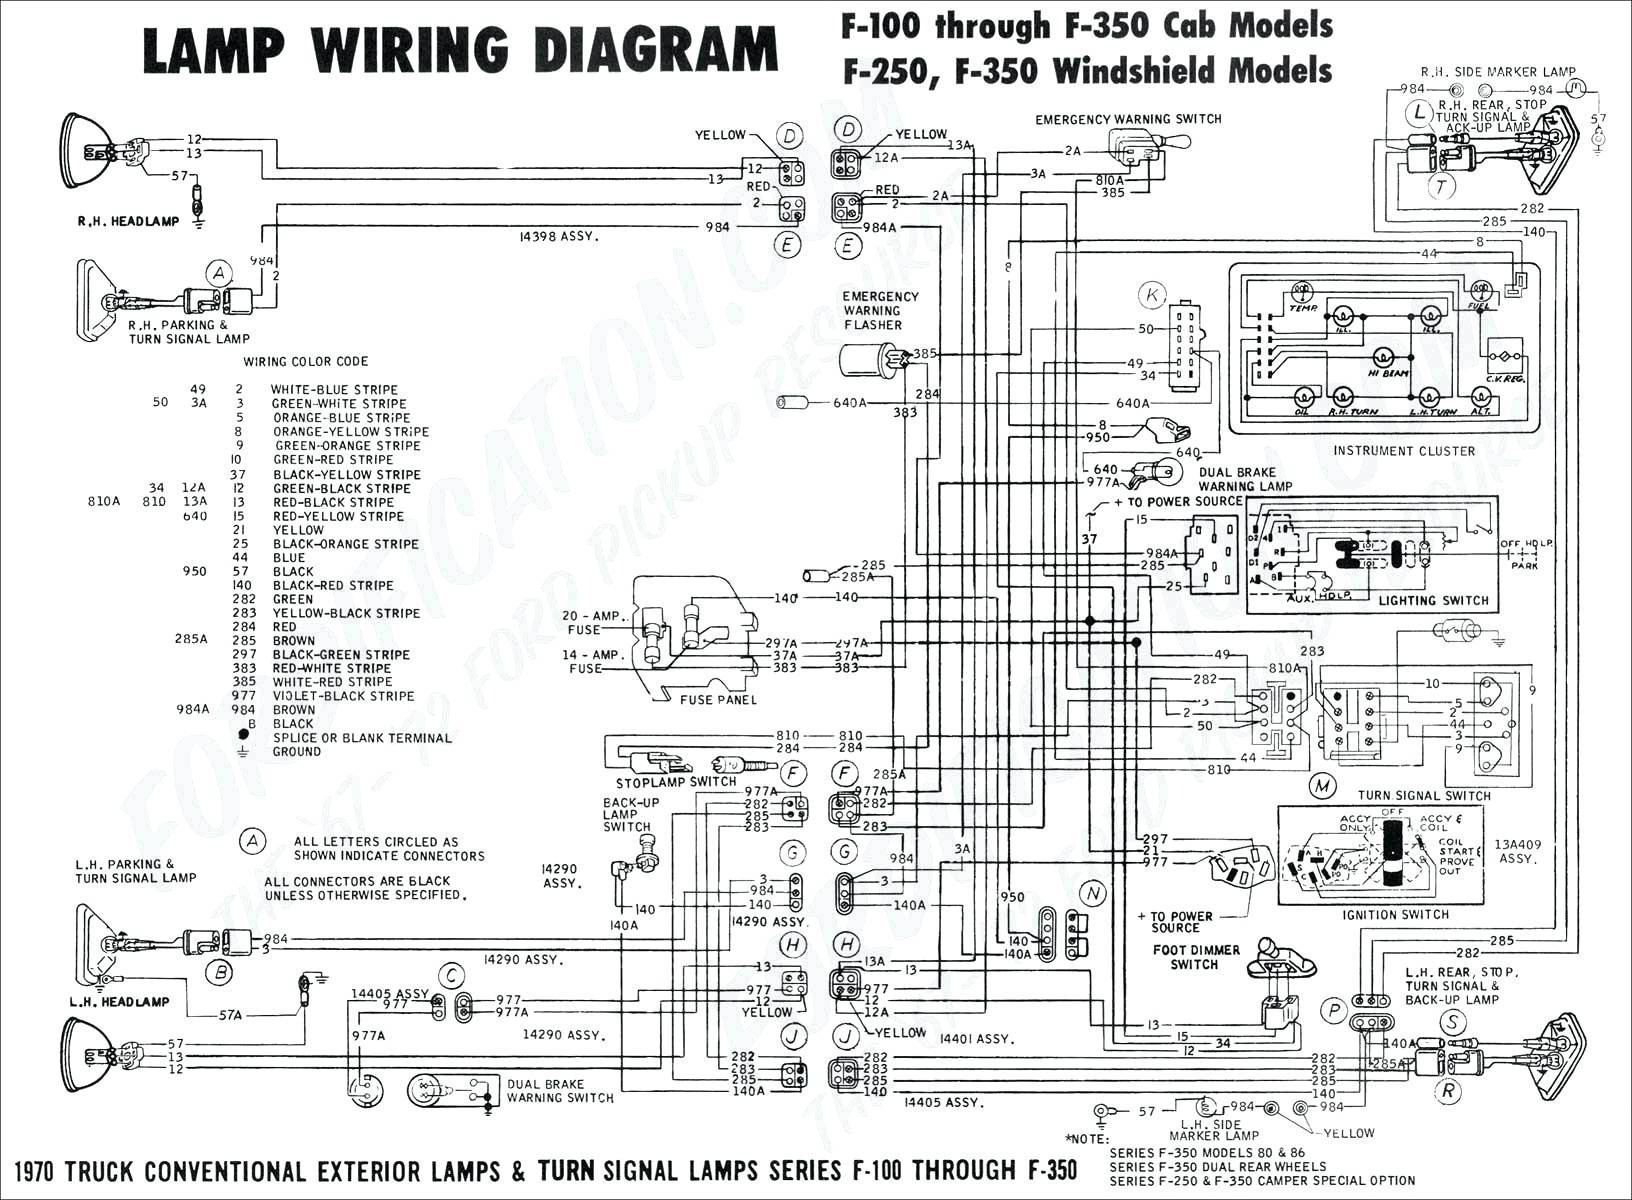 Vauxhall Corsa Towbar Wiring Diagram - Wiring Diagram Rows on fog lights diagram, suspension diagram, headlight adjustment diagram,